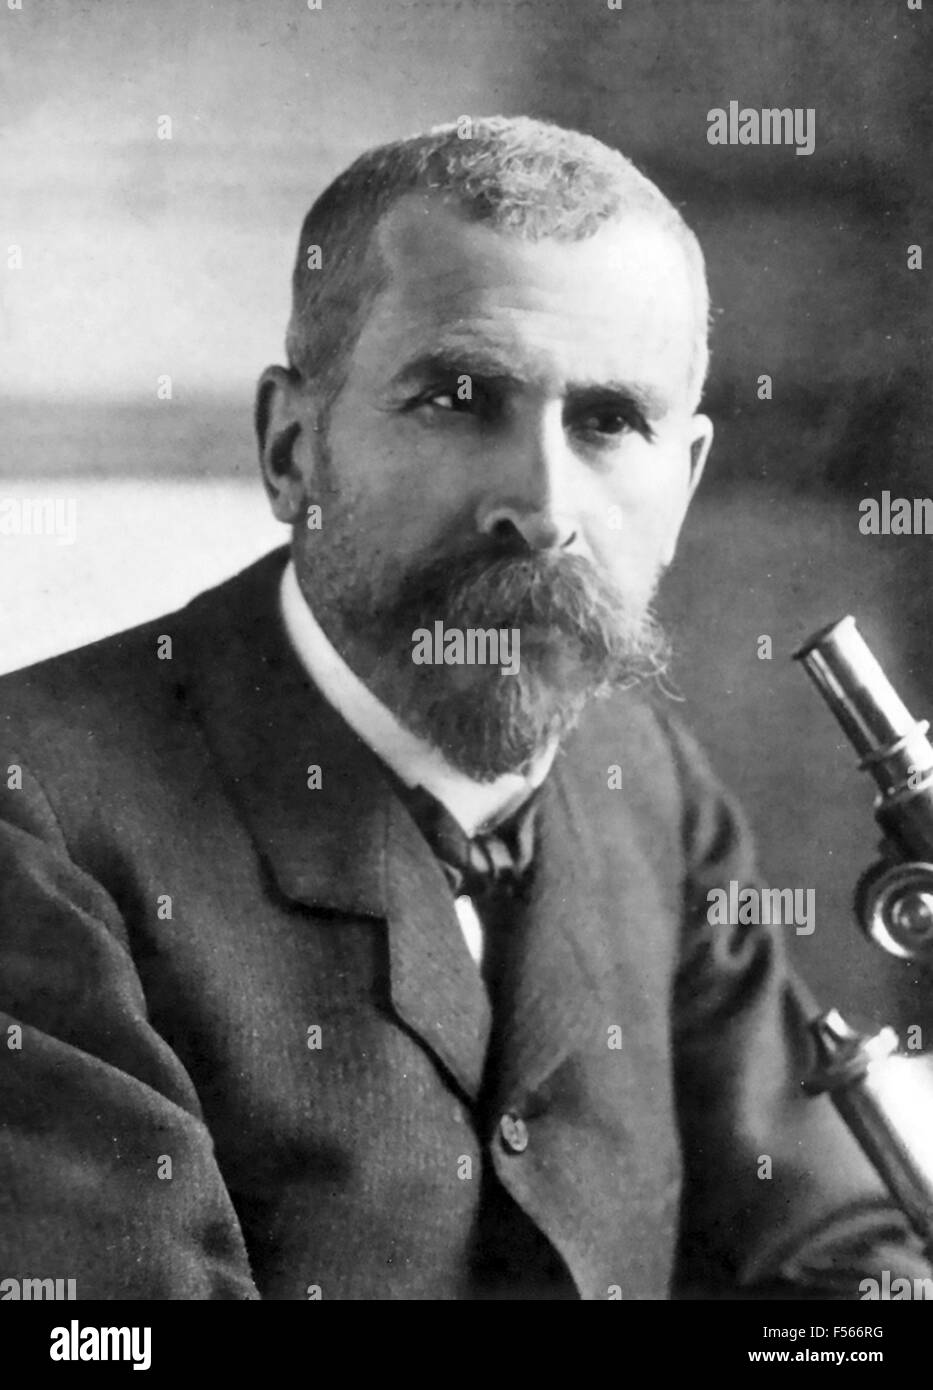 PIERRE ROUX (1853-1933) French bacteriologist about 1910 - Stock Image